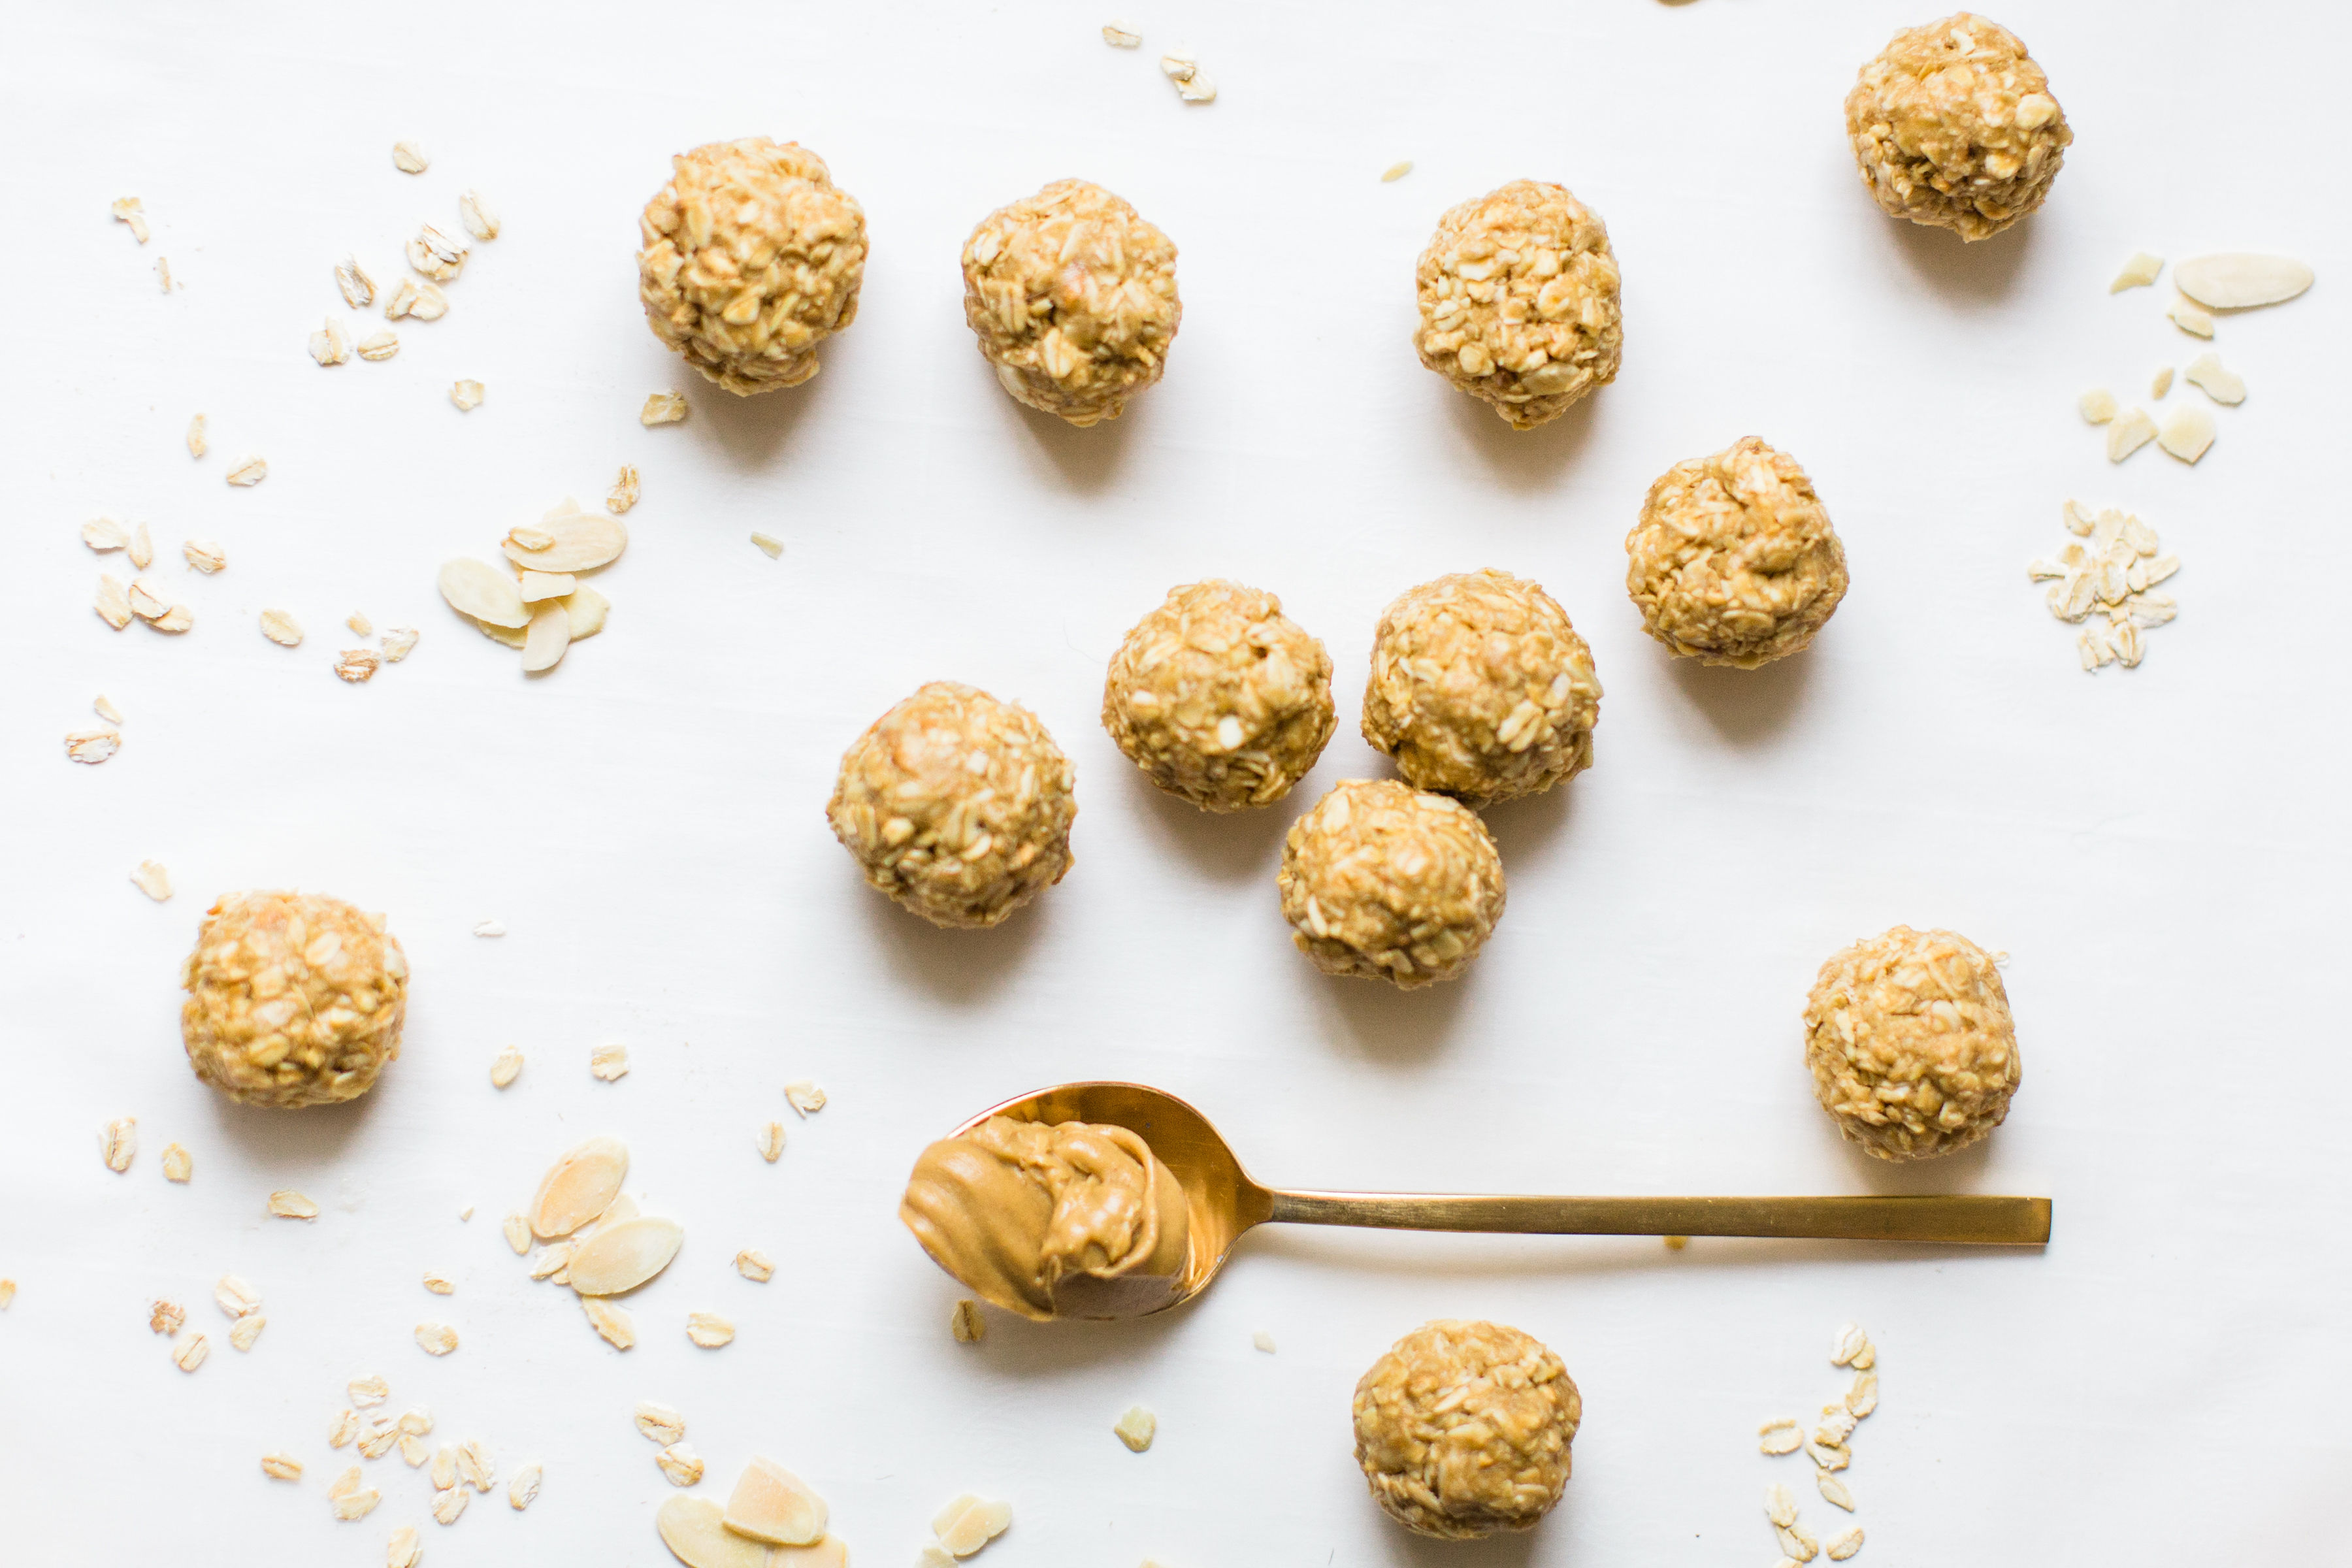 These no-bake energy bites are easy to make, the perfect combination of sweet and salty, have plenty of added protein thanks to the peanut butter, and kids absolutely love them because they're basically delicious no-bake cookies! Click through for the recipe.  #energybites #nobake #nobakecookies #healthysnack #kidsrecipe #kidssnack | glitterinc.com | @glitterinc